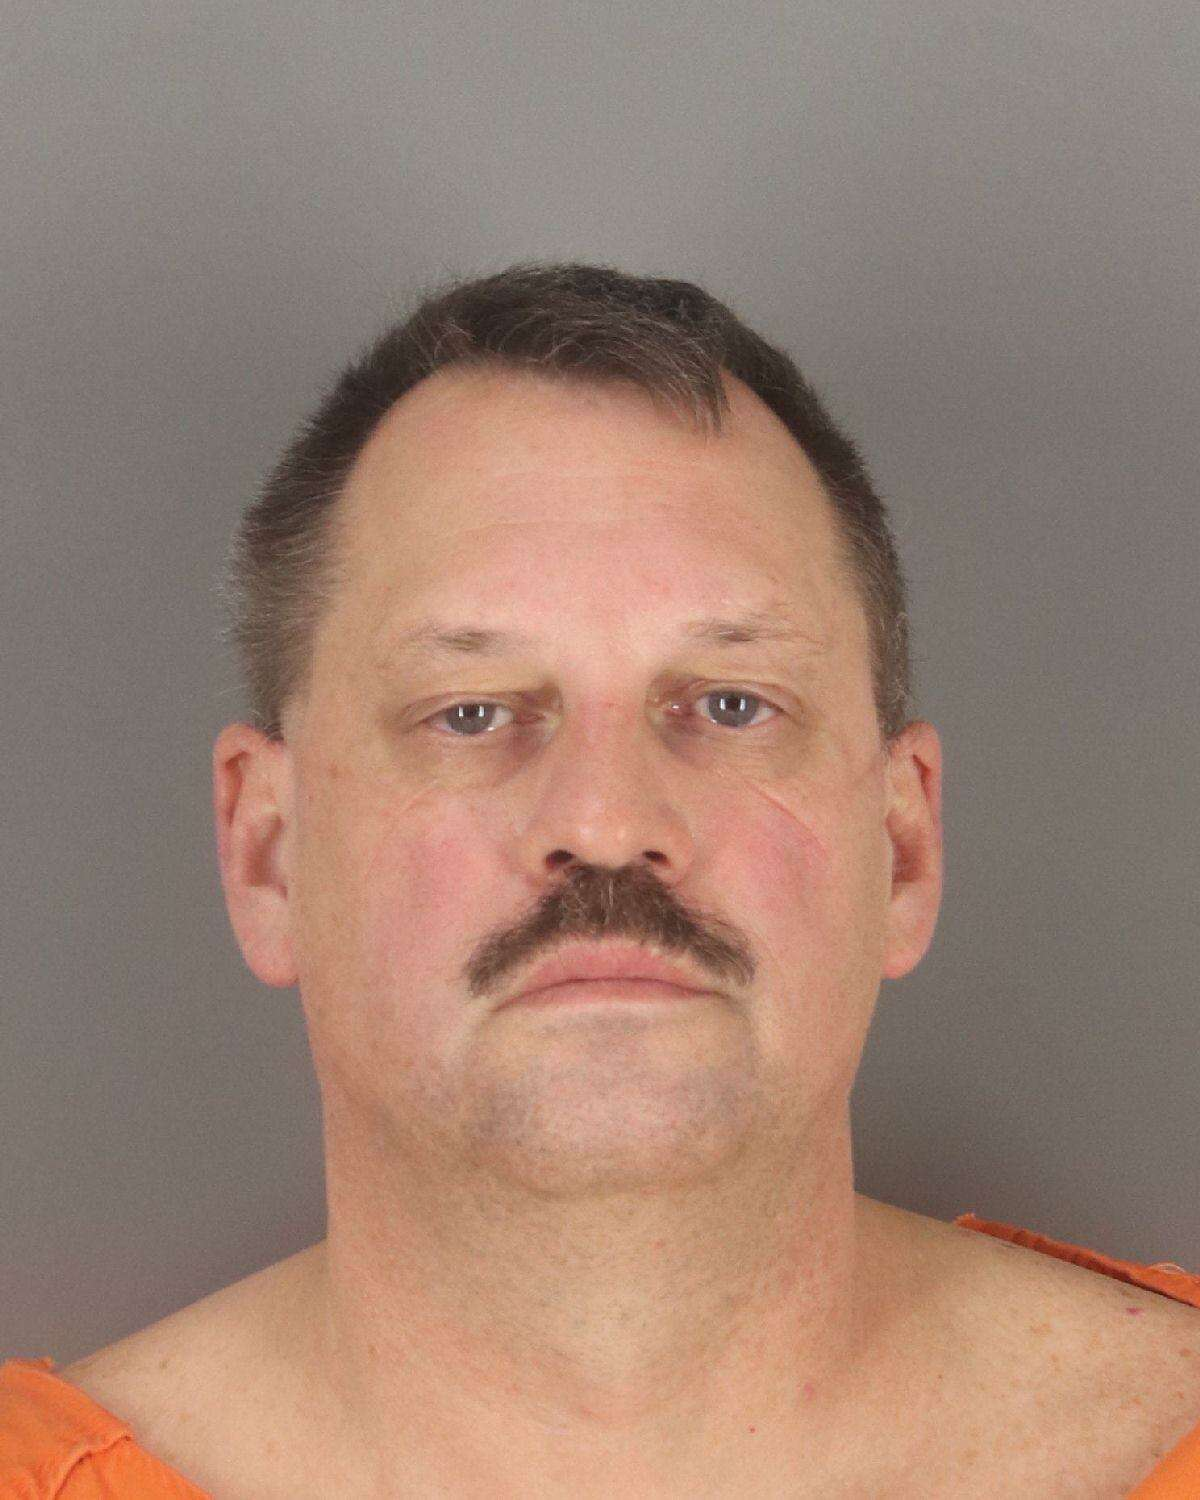 Paul Nelson,54, was arrested Wednesday by Port Neches PD.